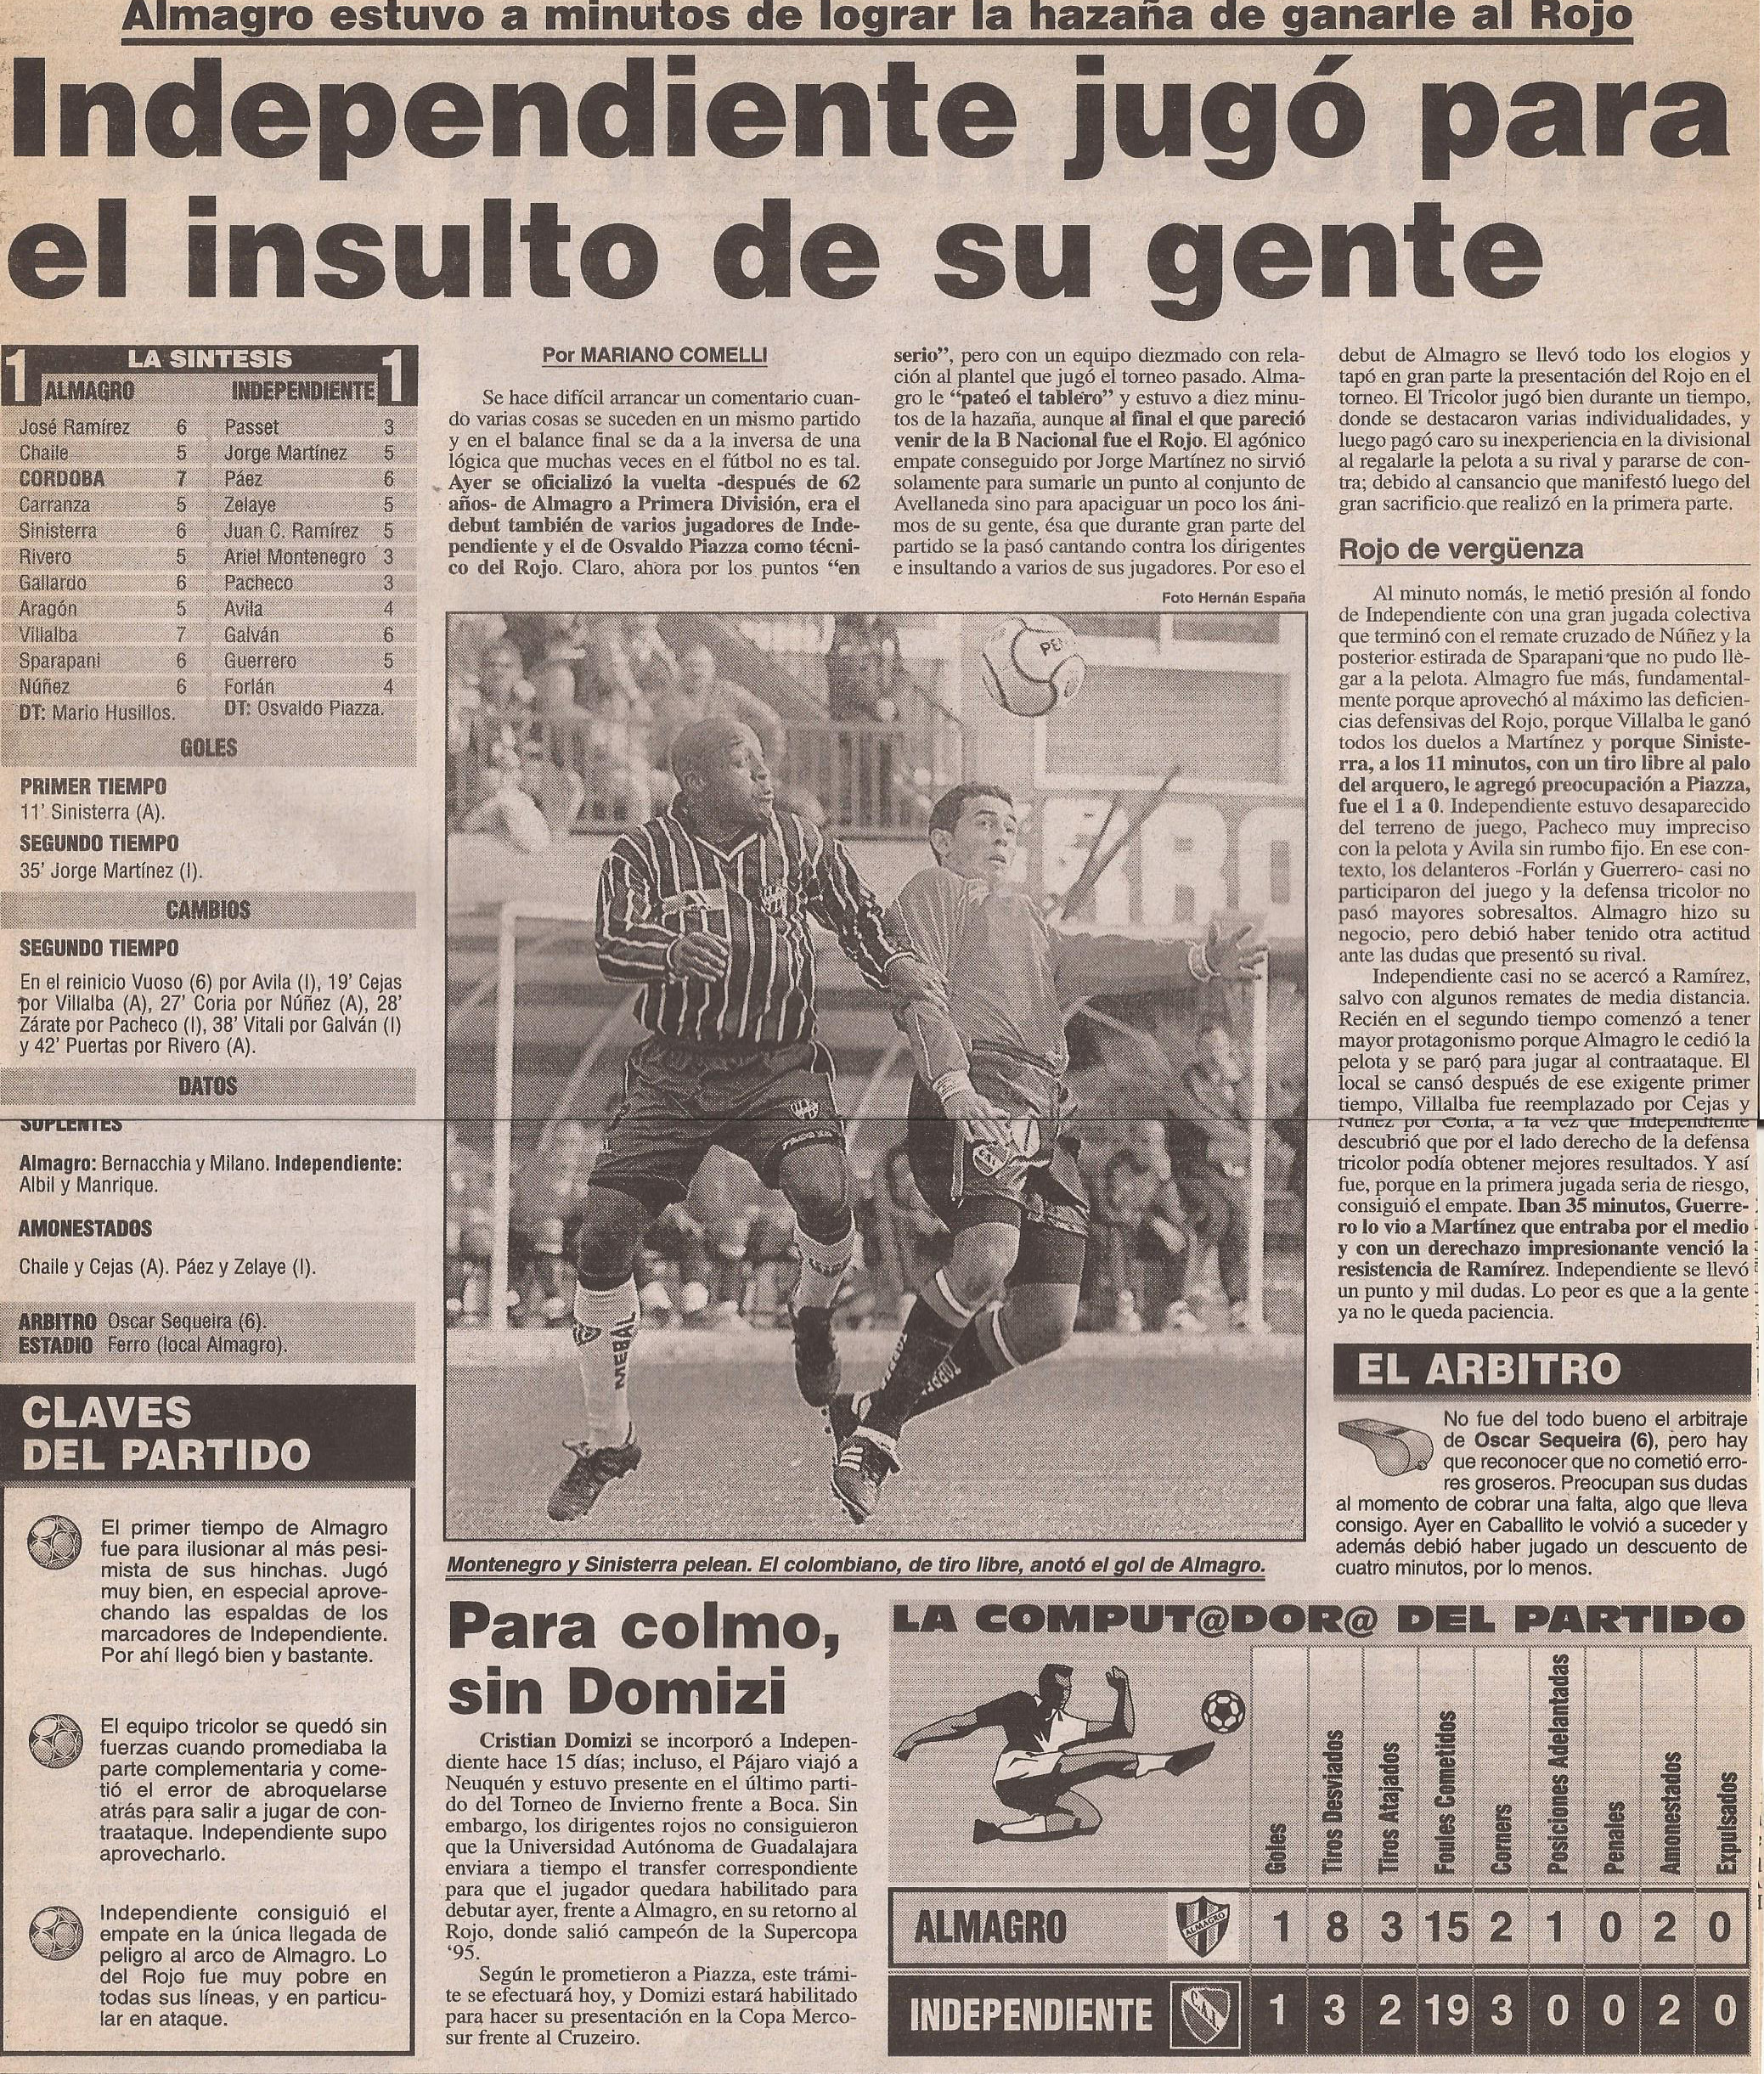 2000-01 Primera Division - Almagro vs Independiente - Diario Popular